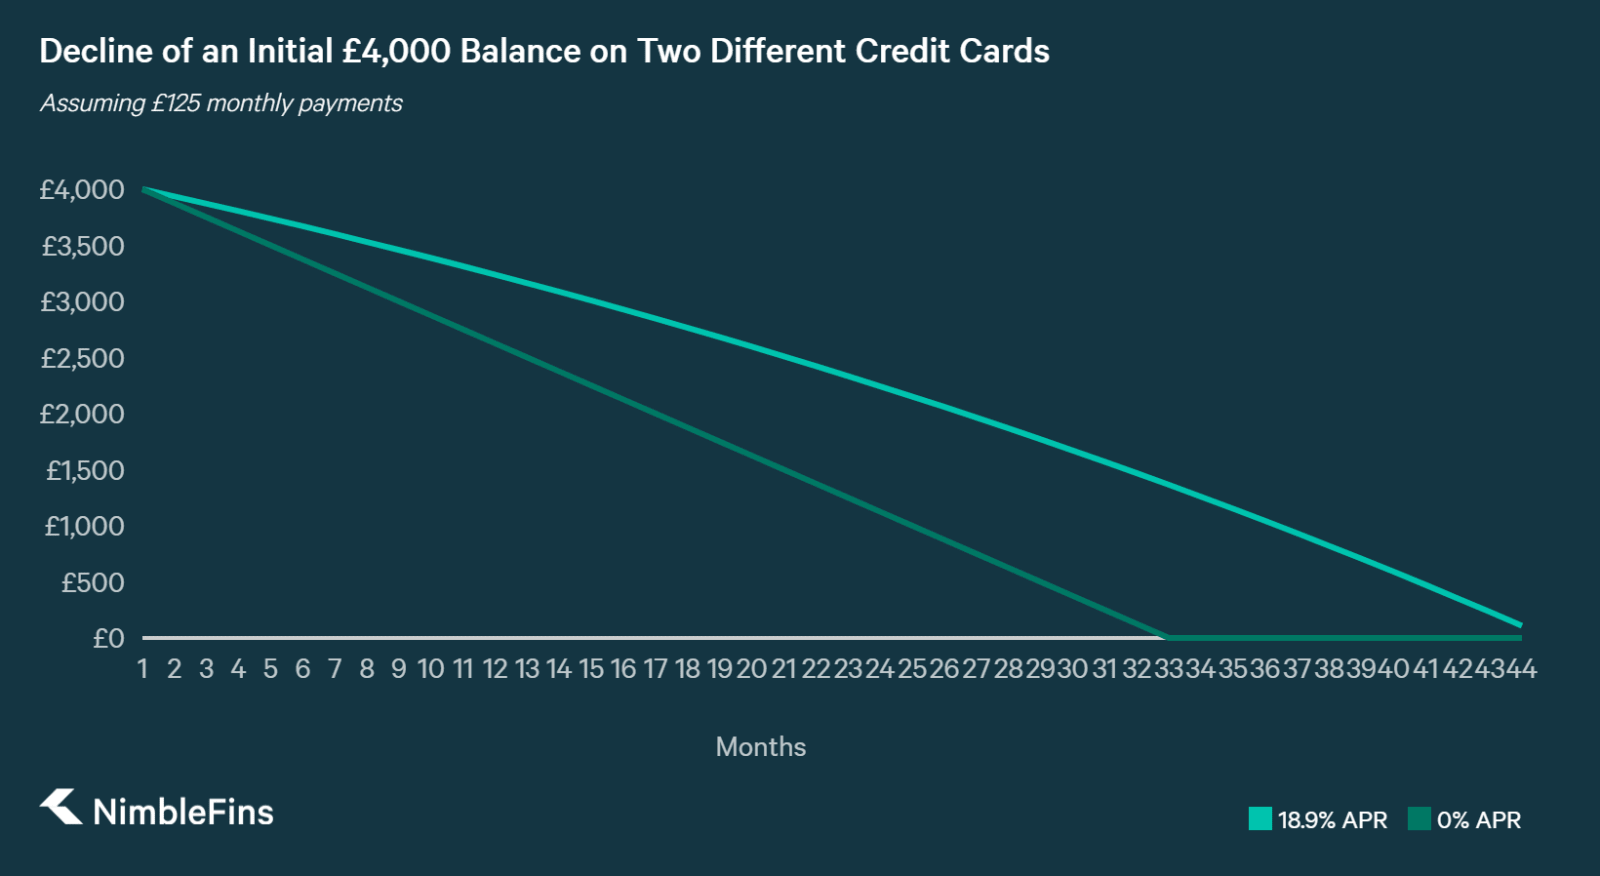 A chart Comparing Debt Repayment of £4,000 on a Balance Transfer Card vs. a Card with 18.9% APR, through £125 monthly payments